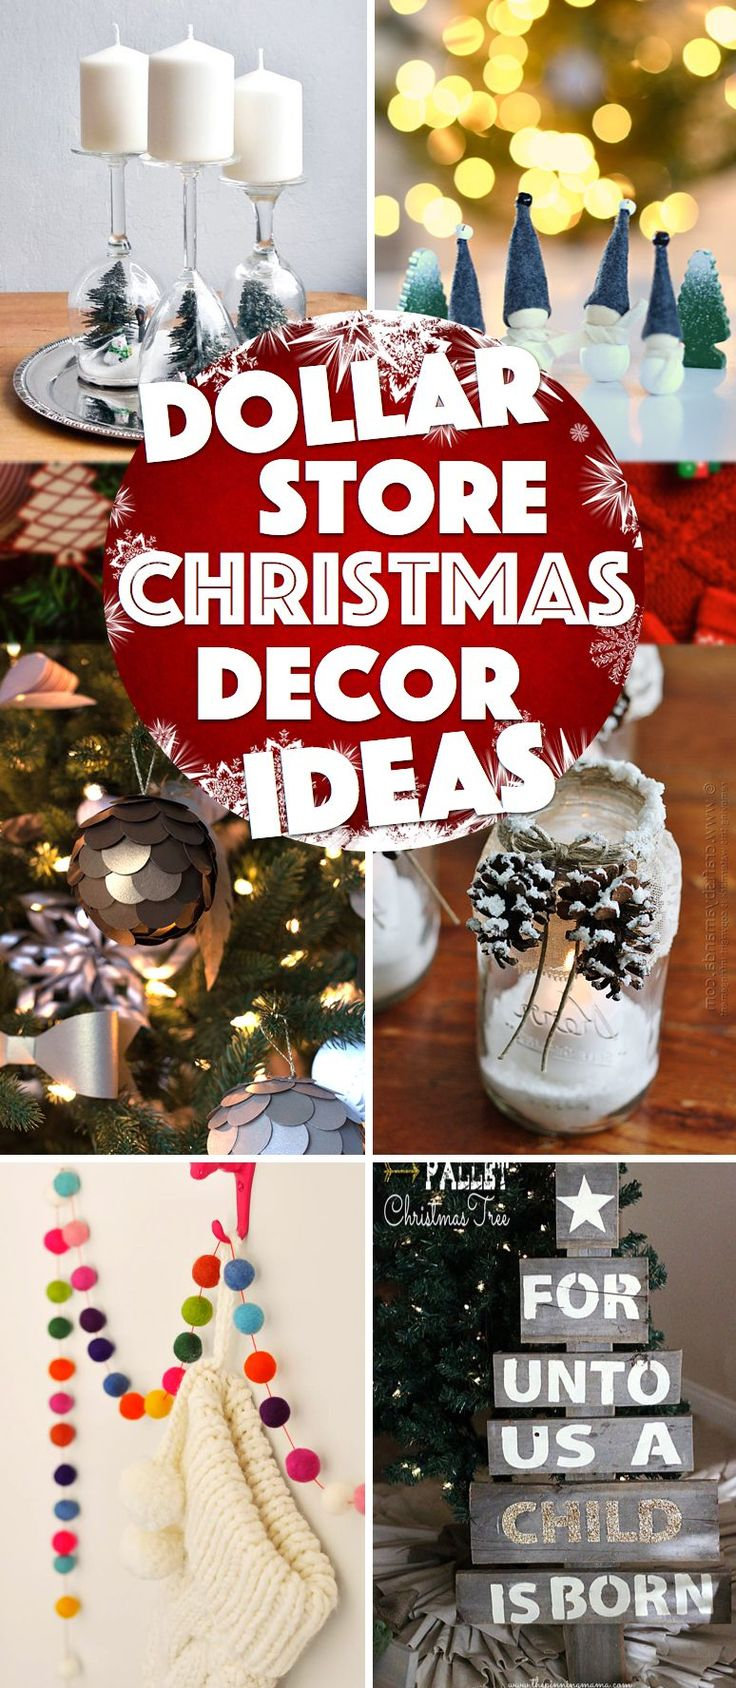 39 Oh So Gorgeous Dollar Store DIY Christmas Decor Ideas to Make You Scream With…